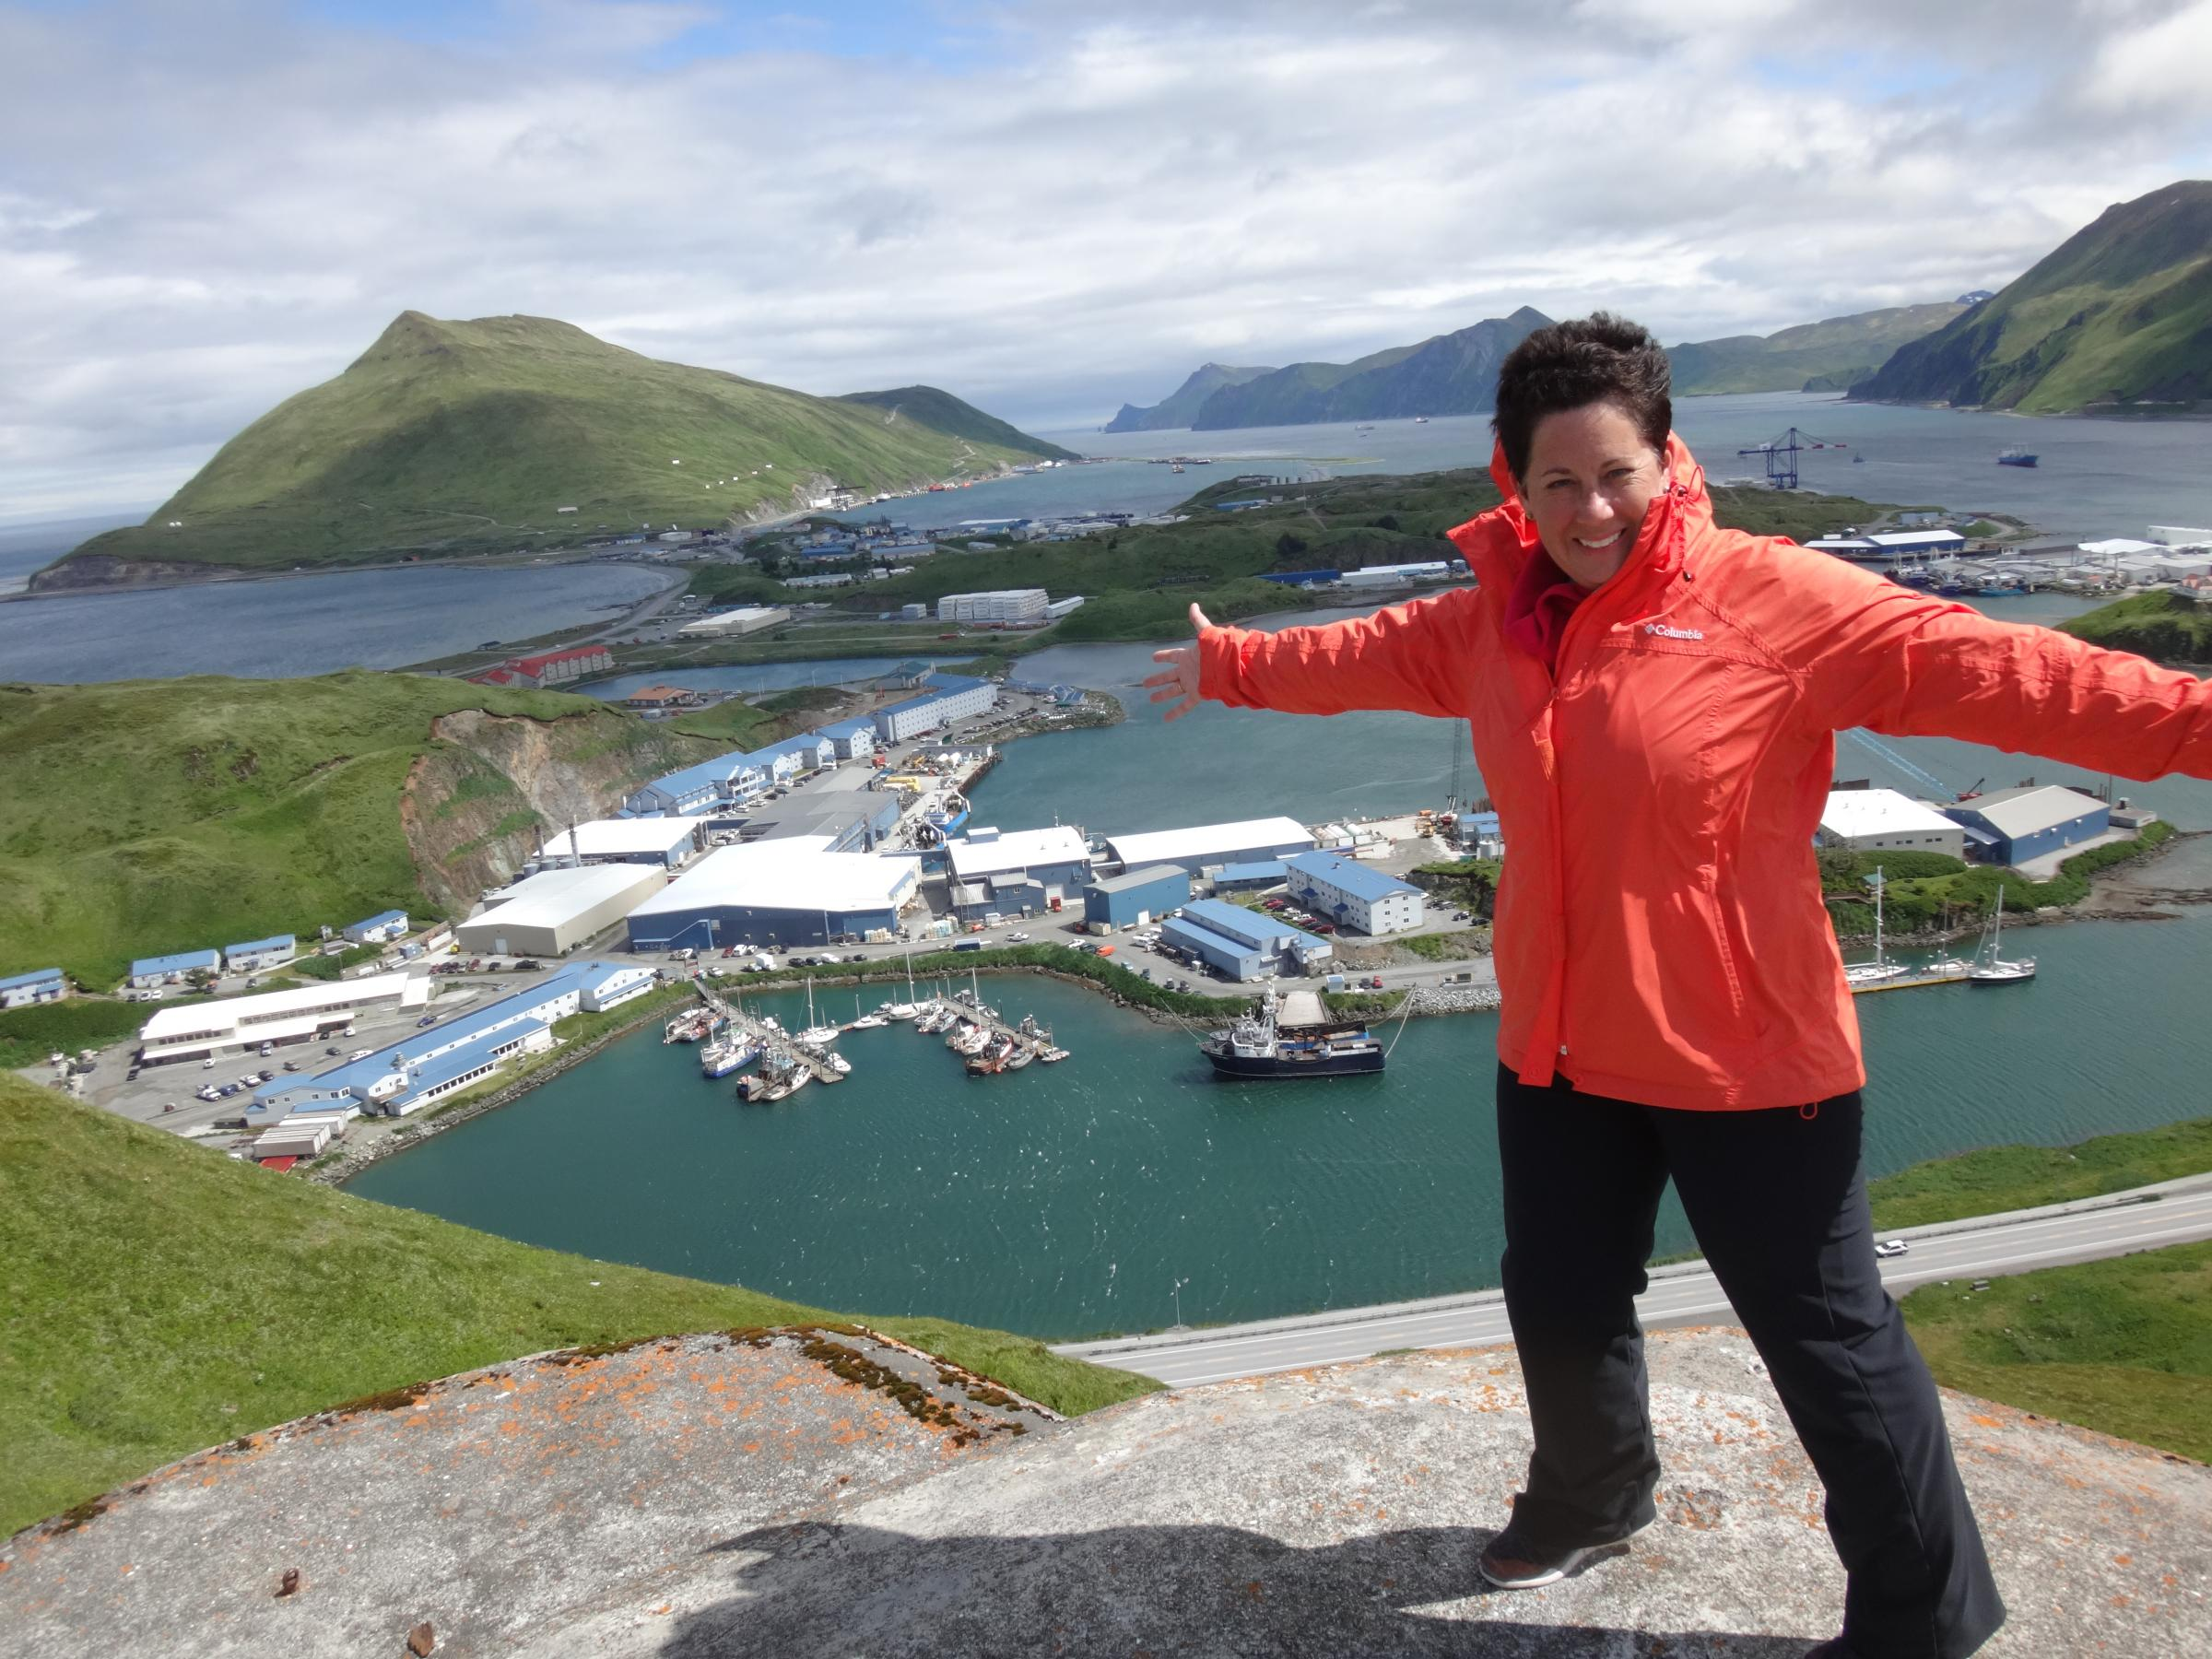 single women in dutch harbor 0 single family homes for sale in dutch harbor unalaska view pictures of homes, review sales history, and use our detailed filters to find the perfect place.